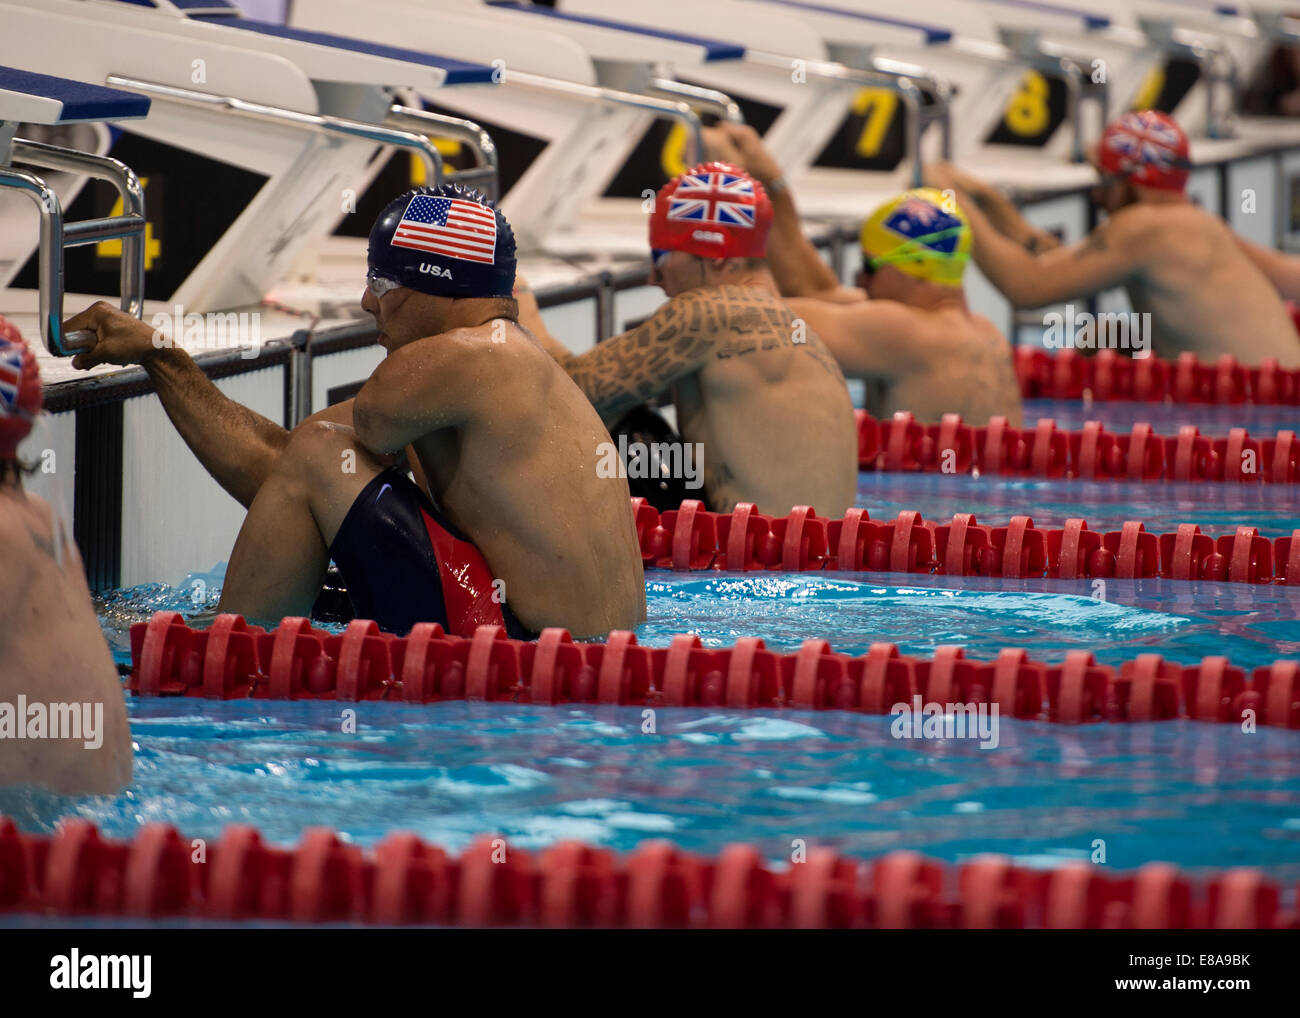 Retired U.S. Army Staff Sgt. Michael Kacer, left, prepares for the 50-meter backstroke race during the swimming - Stock Image